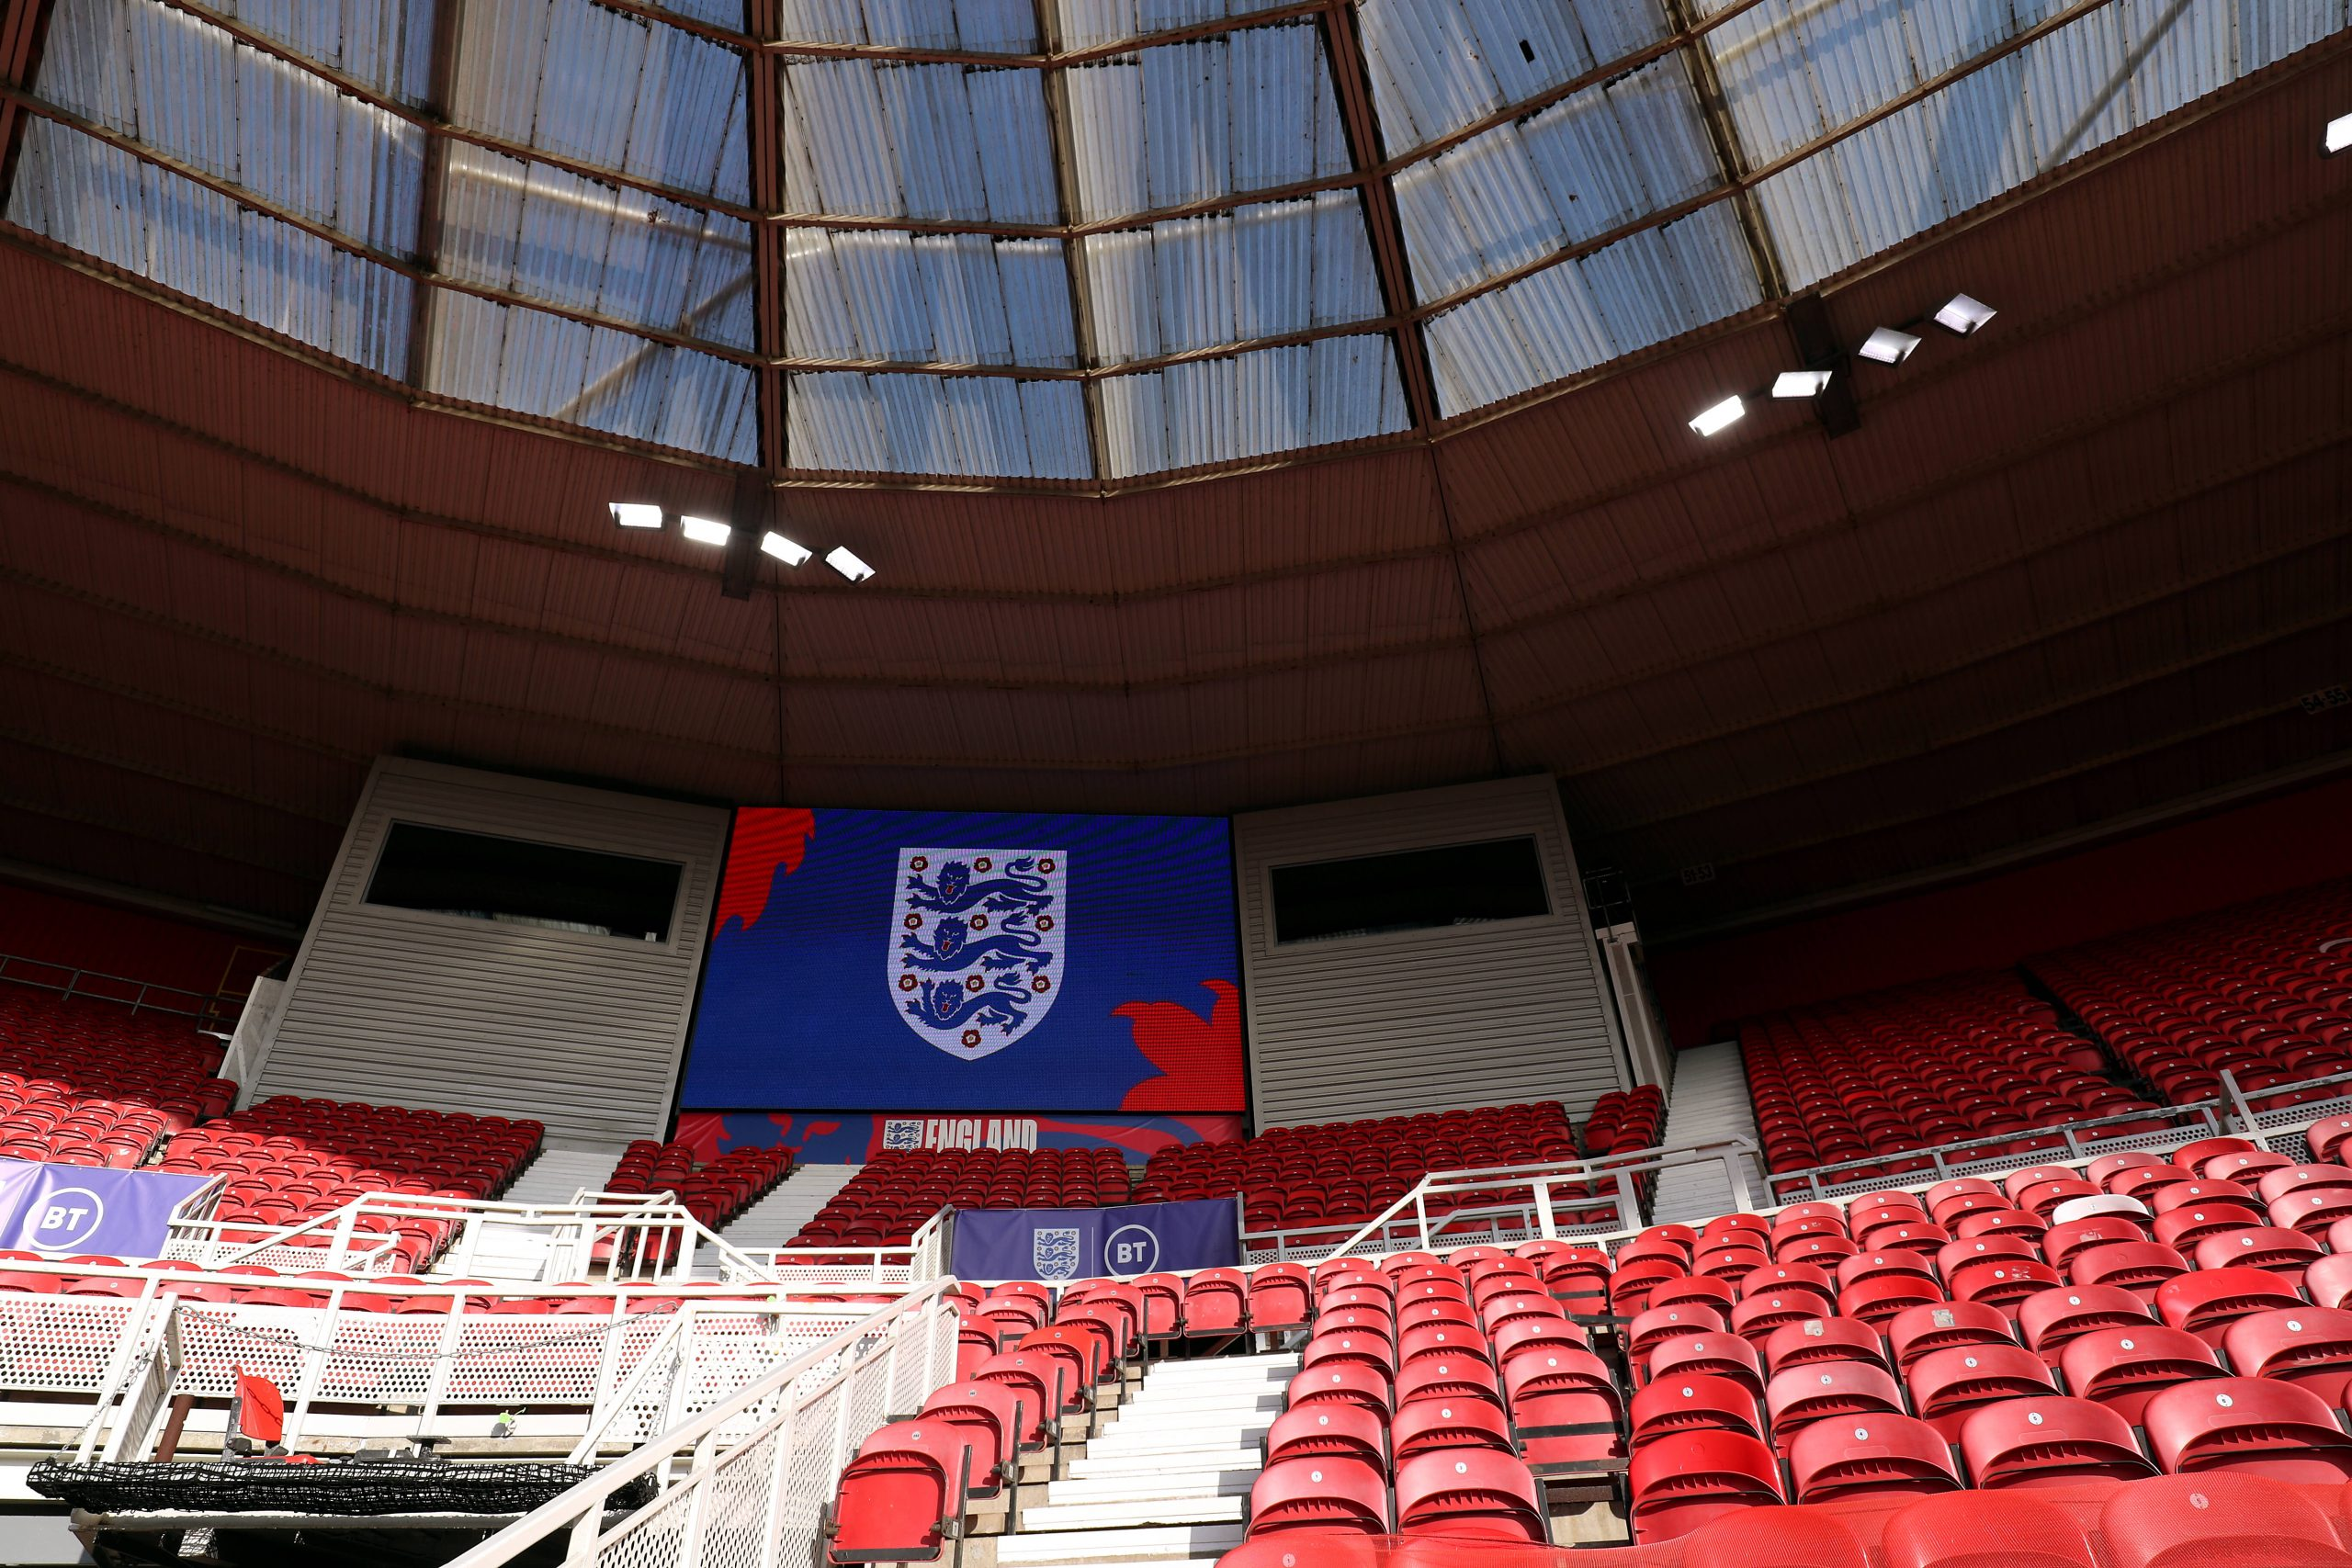 The Three Lions logo as seen during the England vs Austria friendly match. (imago Images)